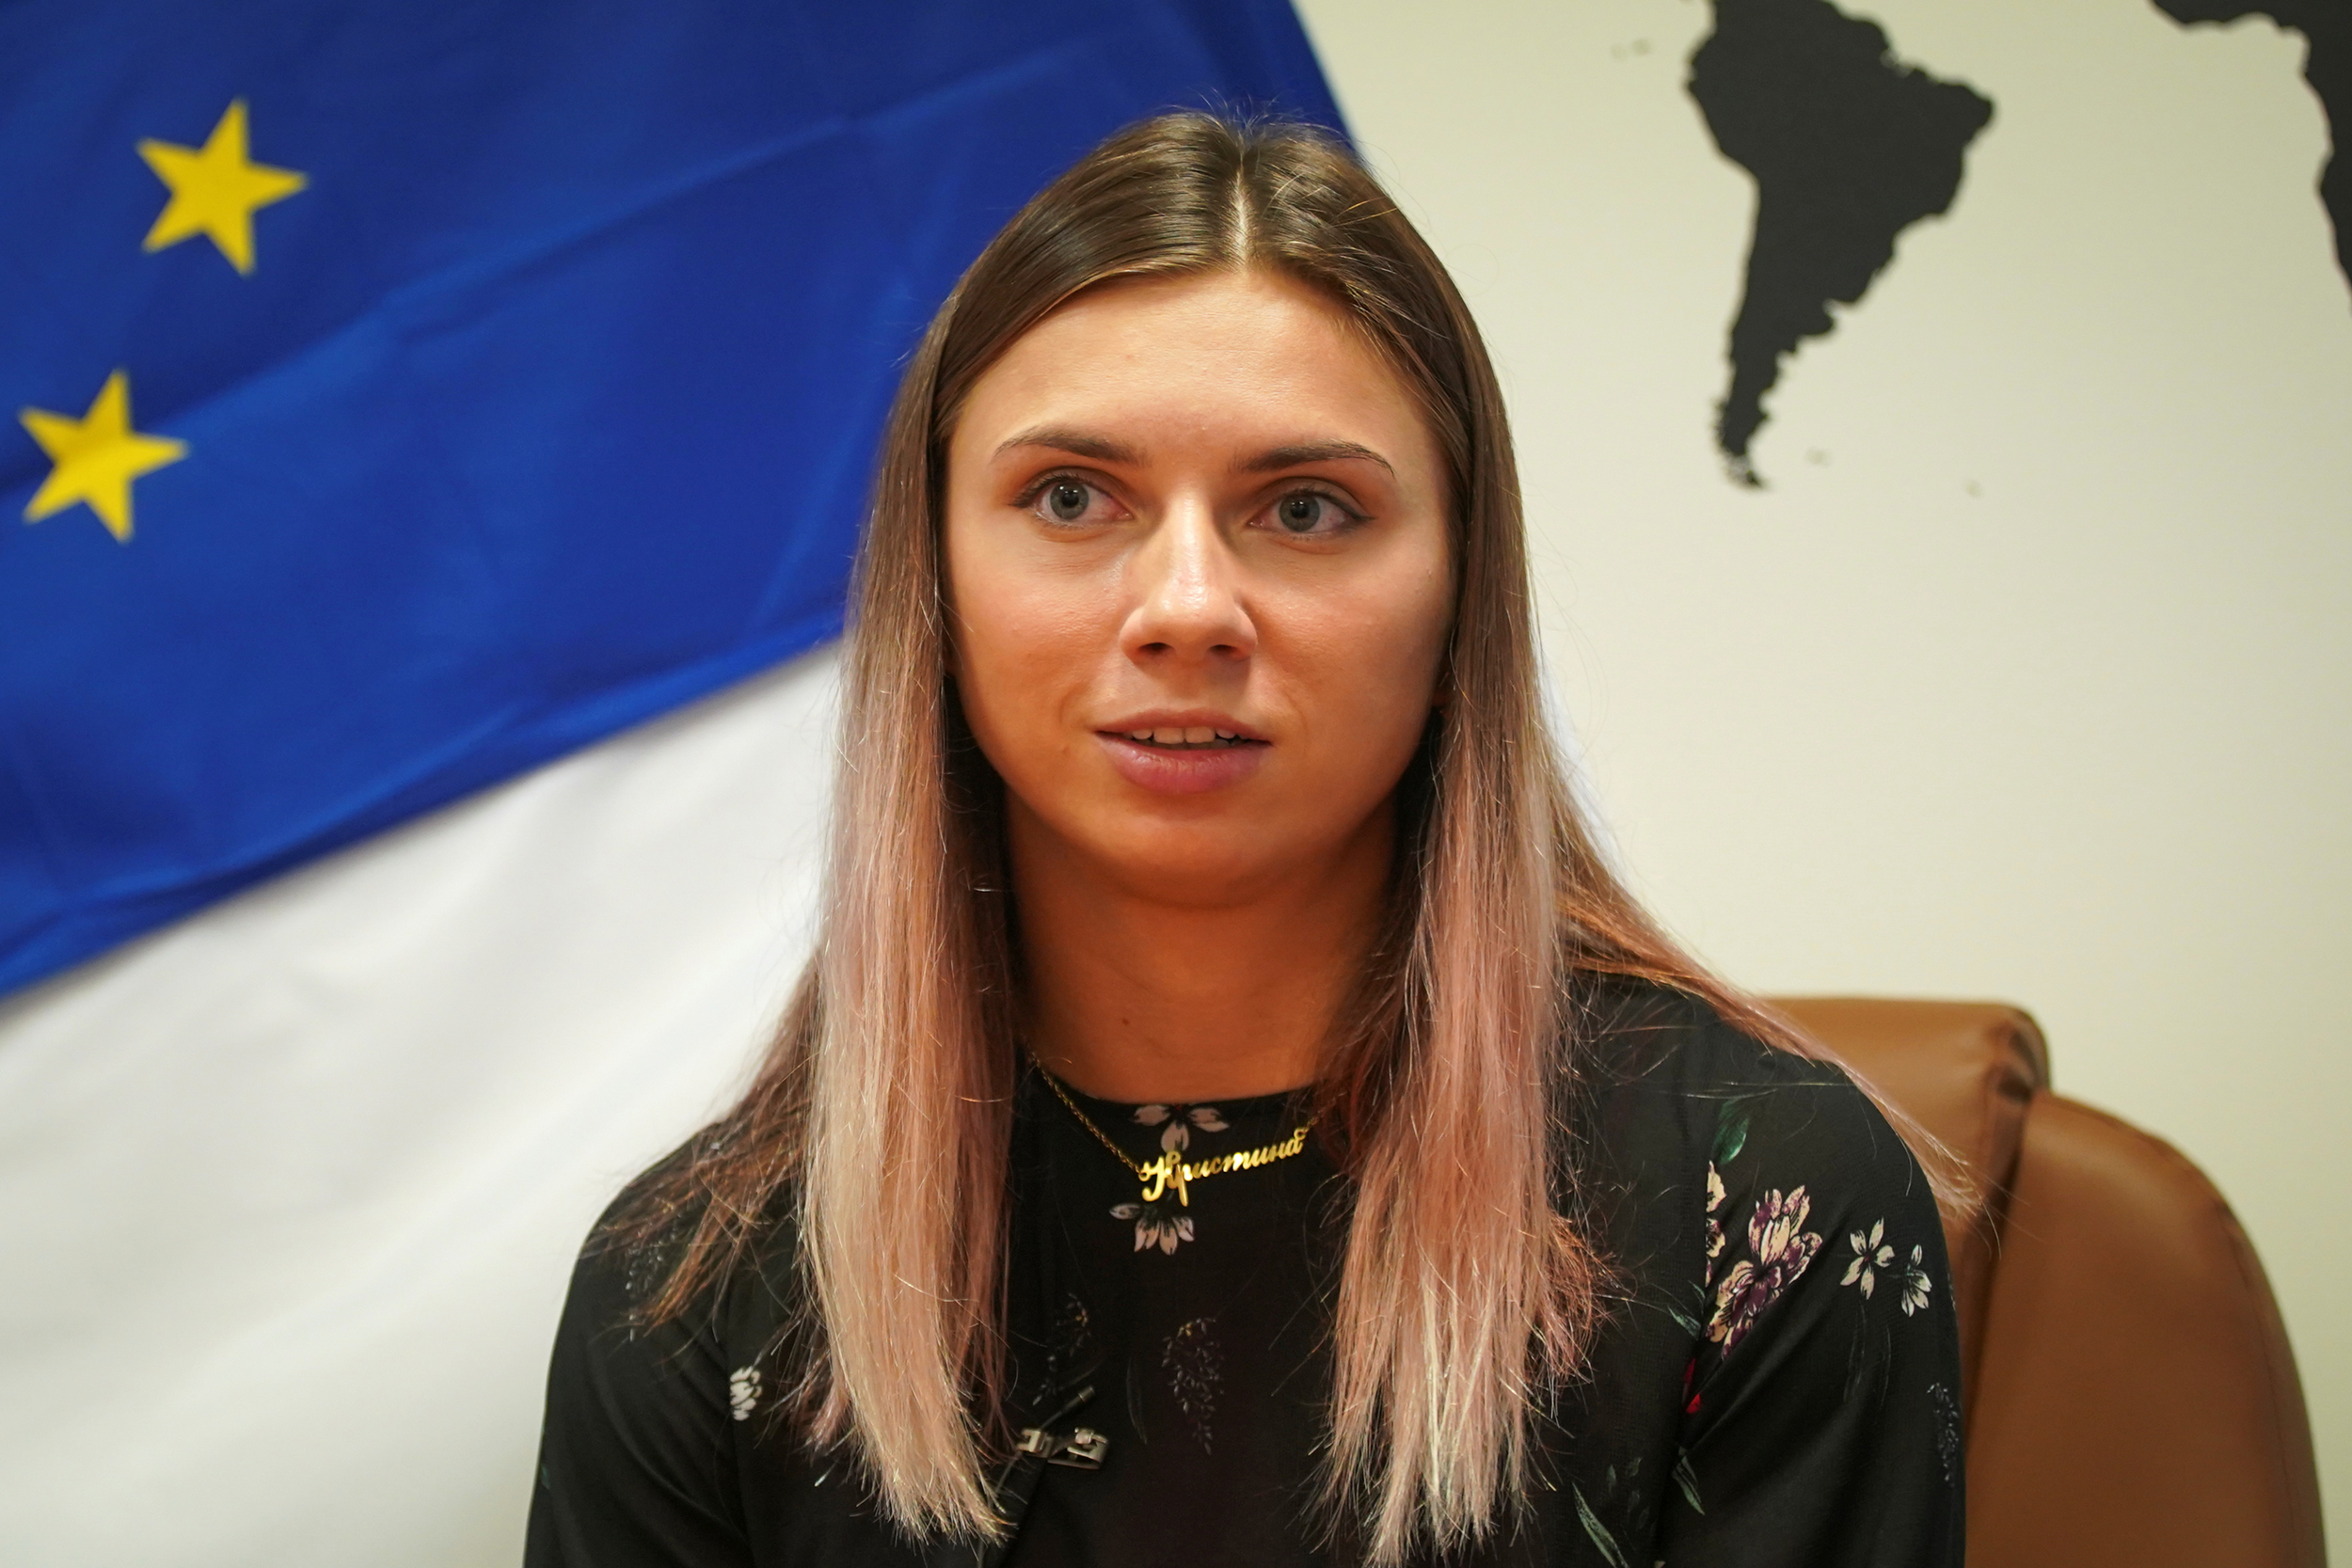 Sprinter says grandmother warned it was not safe to return to Belarus on way to airport